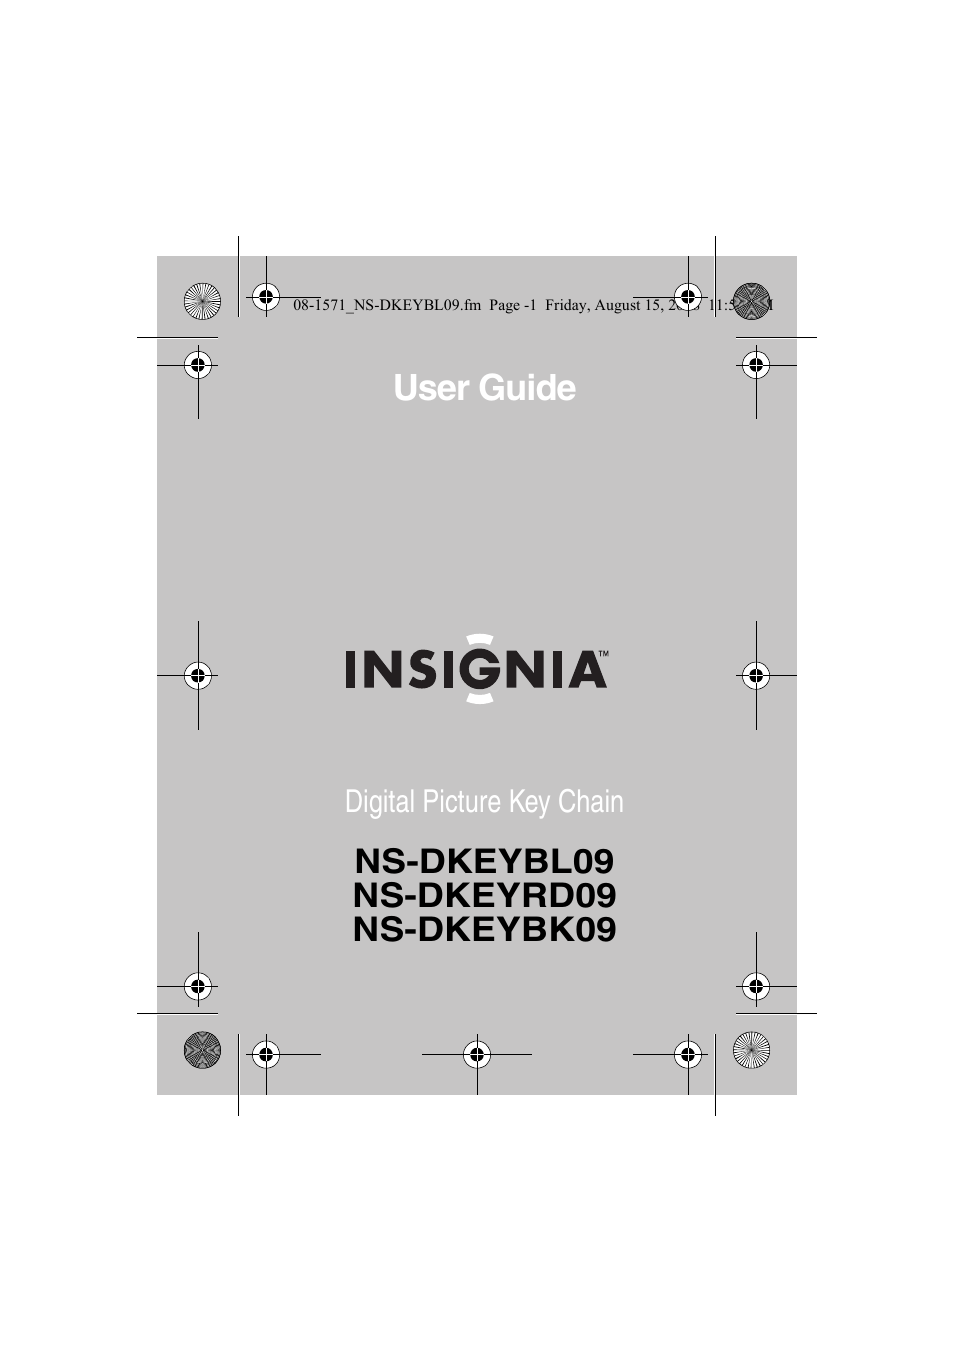 Insignia digital picture frame manual images craft decoration ideas insignia troubleshooting images free troubleshooting examples insignia digital picture frame manual gallery craft decoration ideas insignia sciox Gallery